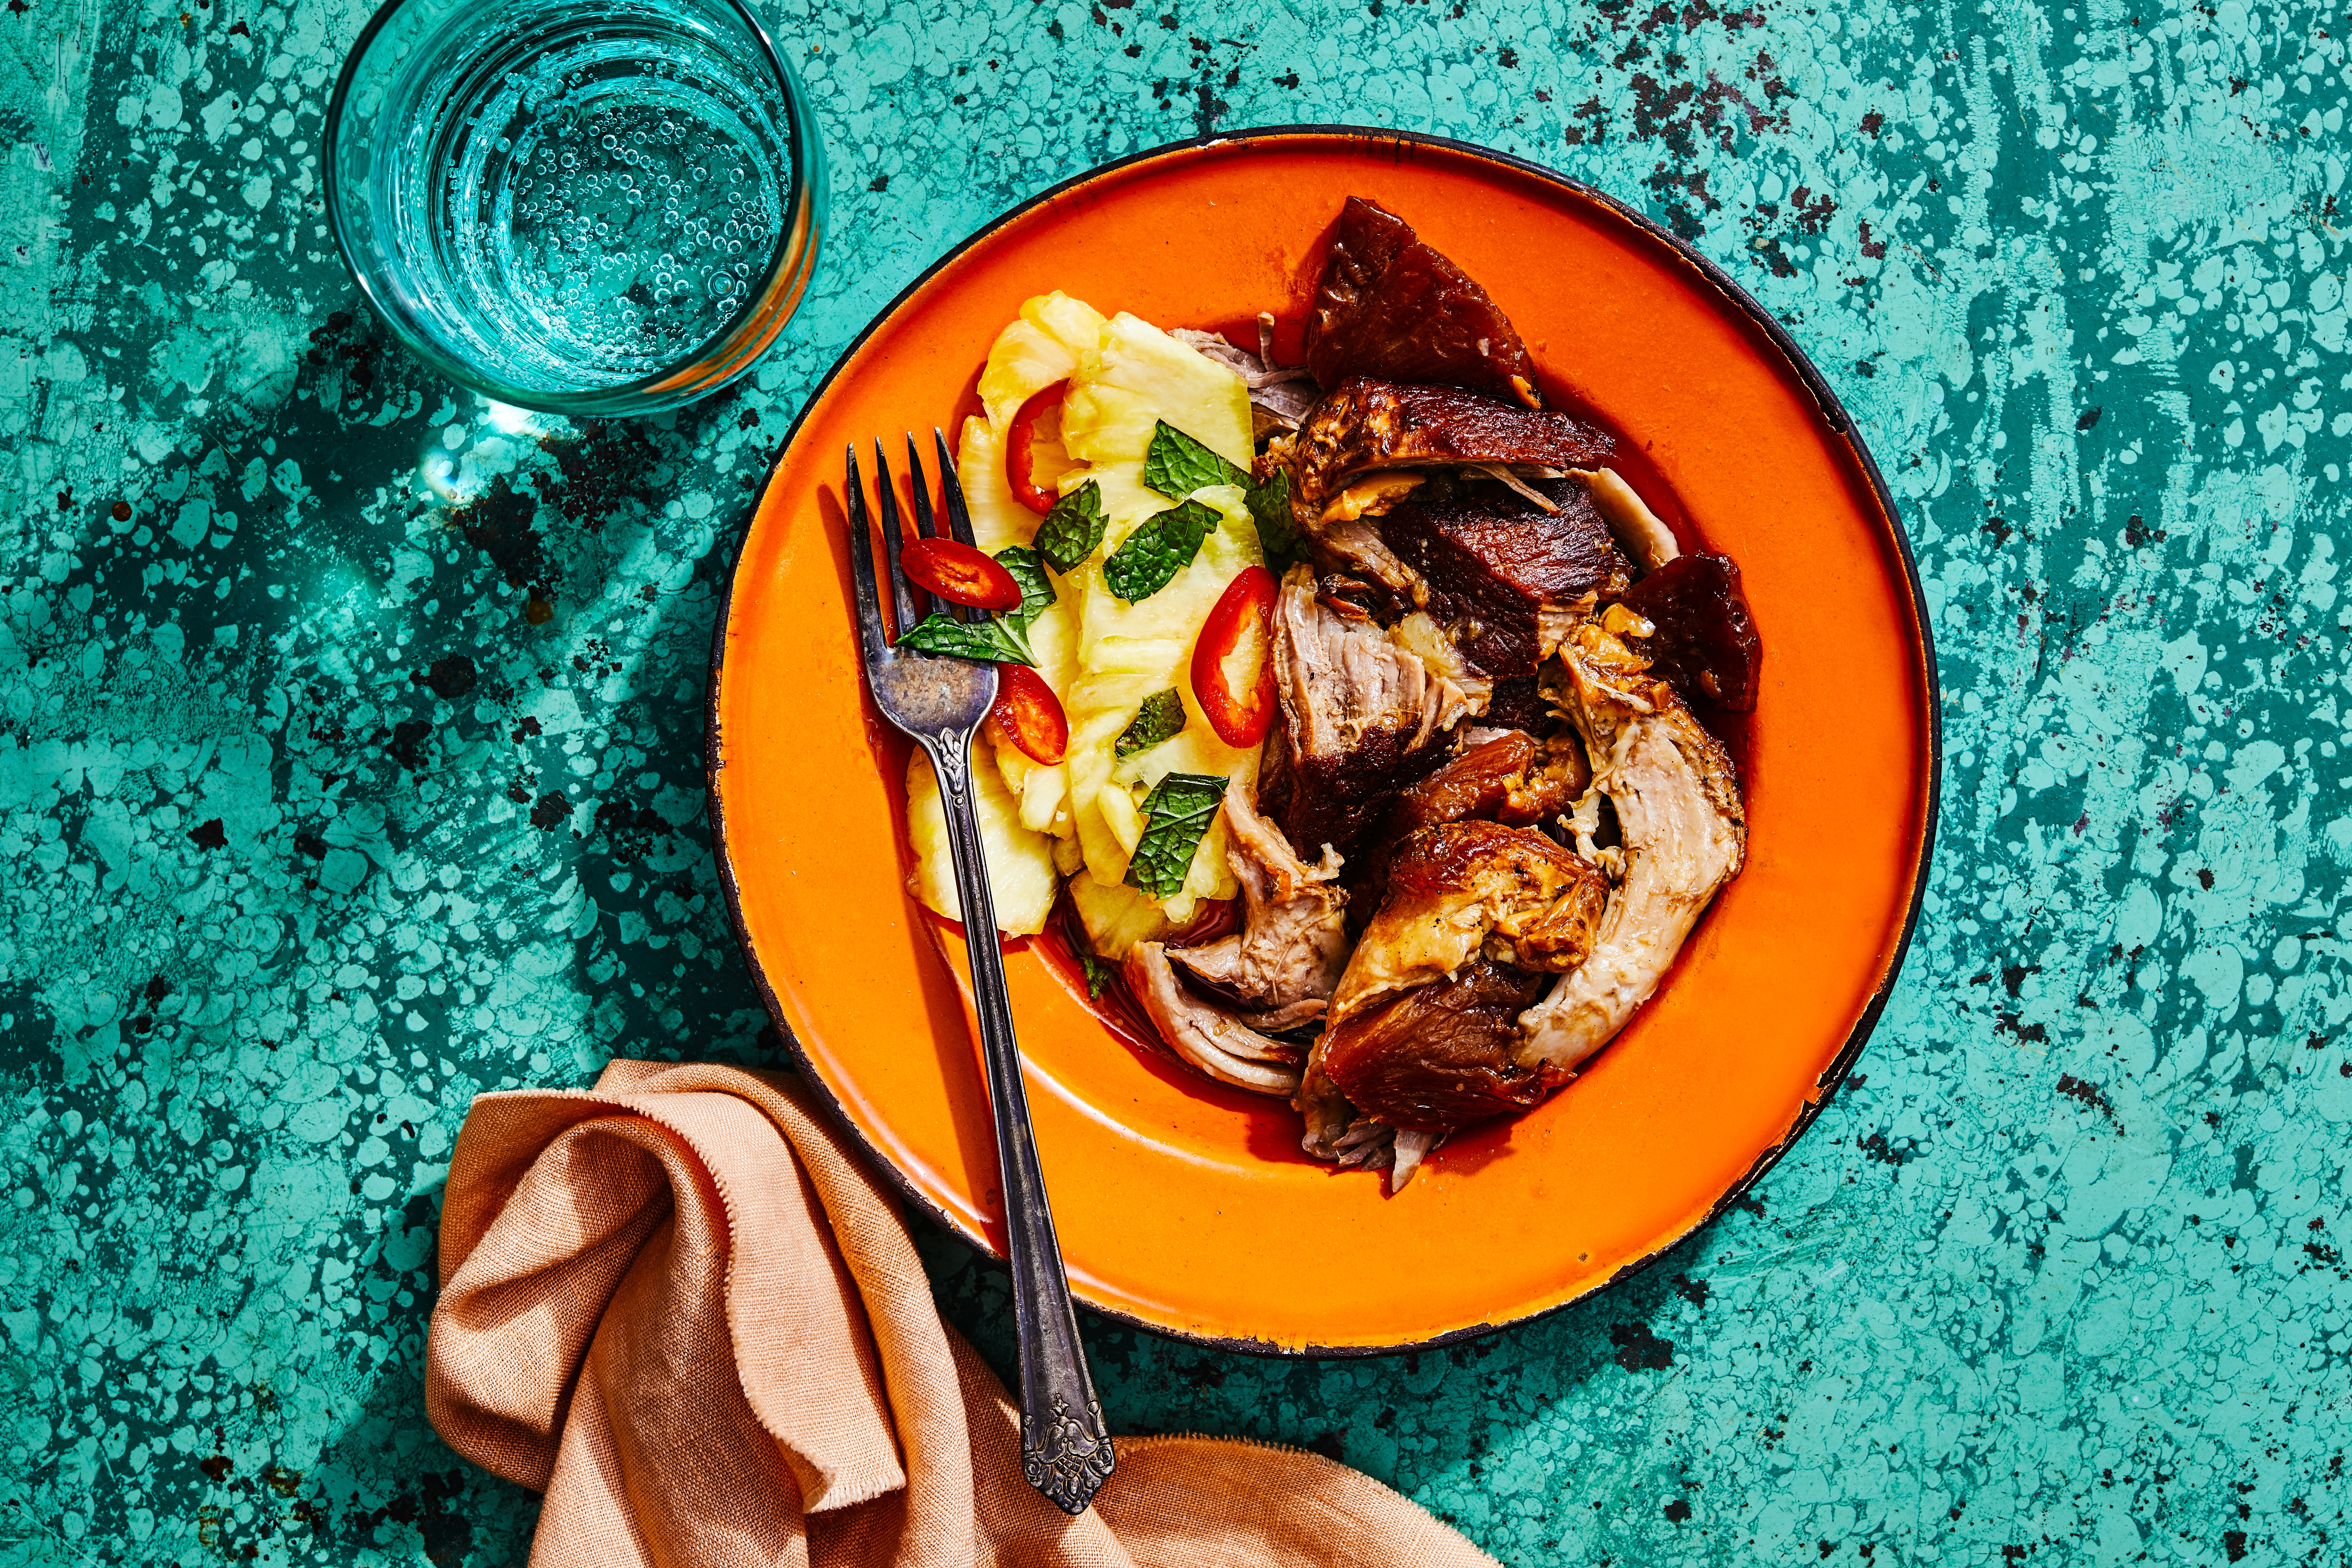 Pork and Pineapple Adobo Roast with Pickled Pineapple Salad